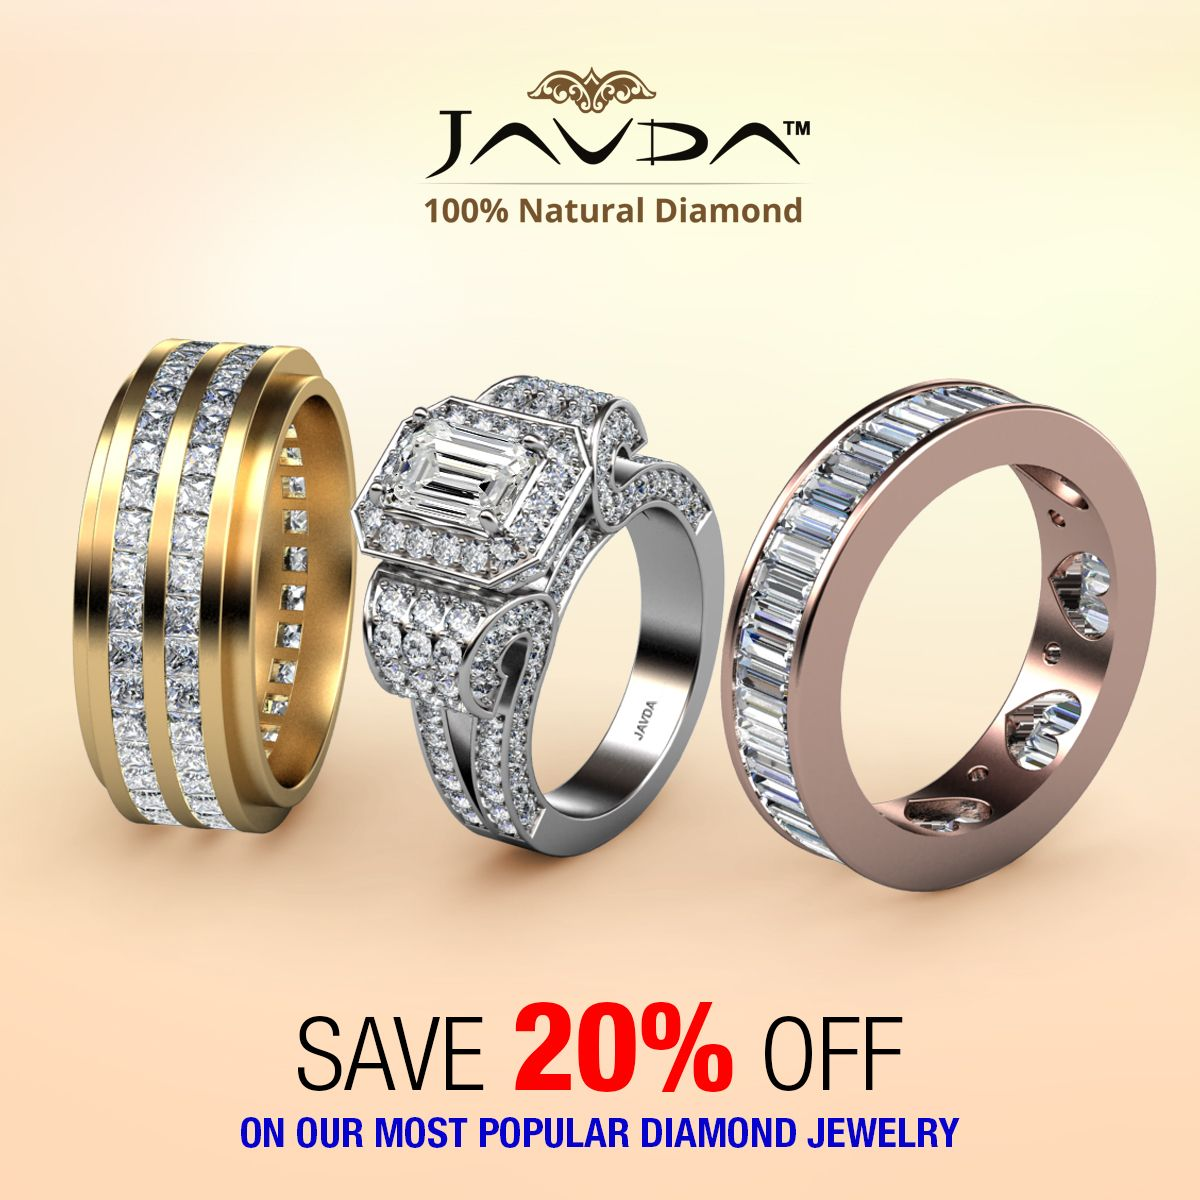 Just for you! Save 20% discount on diamond men's & women's wedding bands and engagement ring. #bride #engagementring #weddingband #womensaccessories #whitegold #diamond #weddingband #proposal #sparkle #luxury